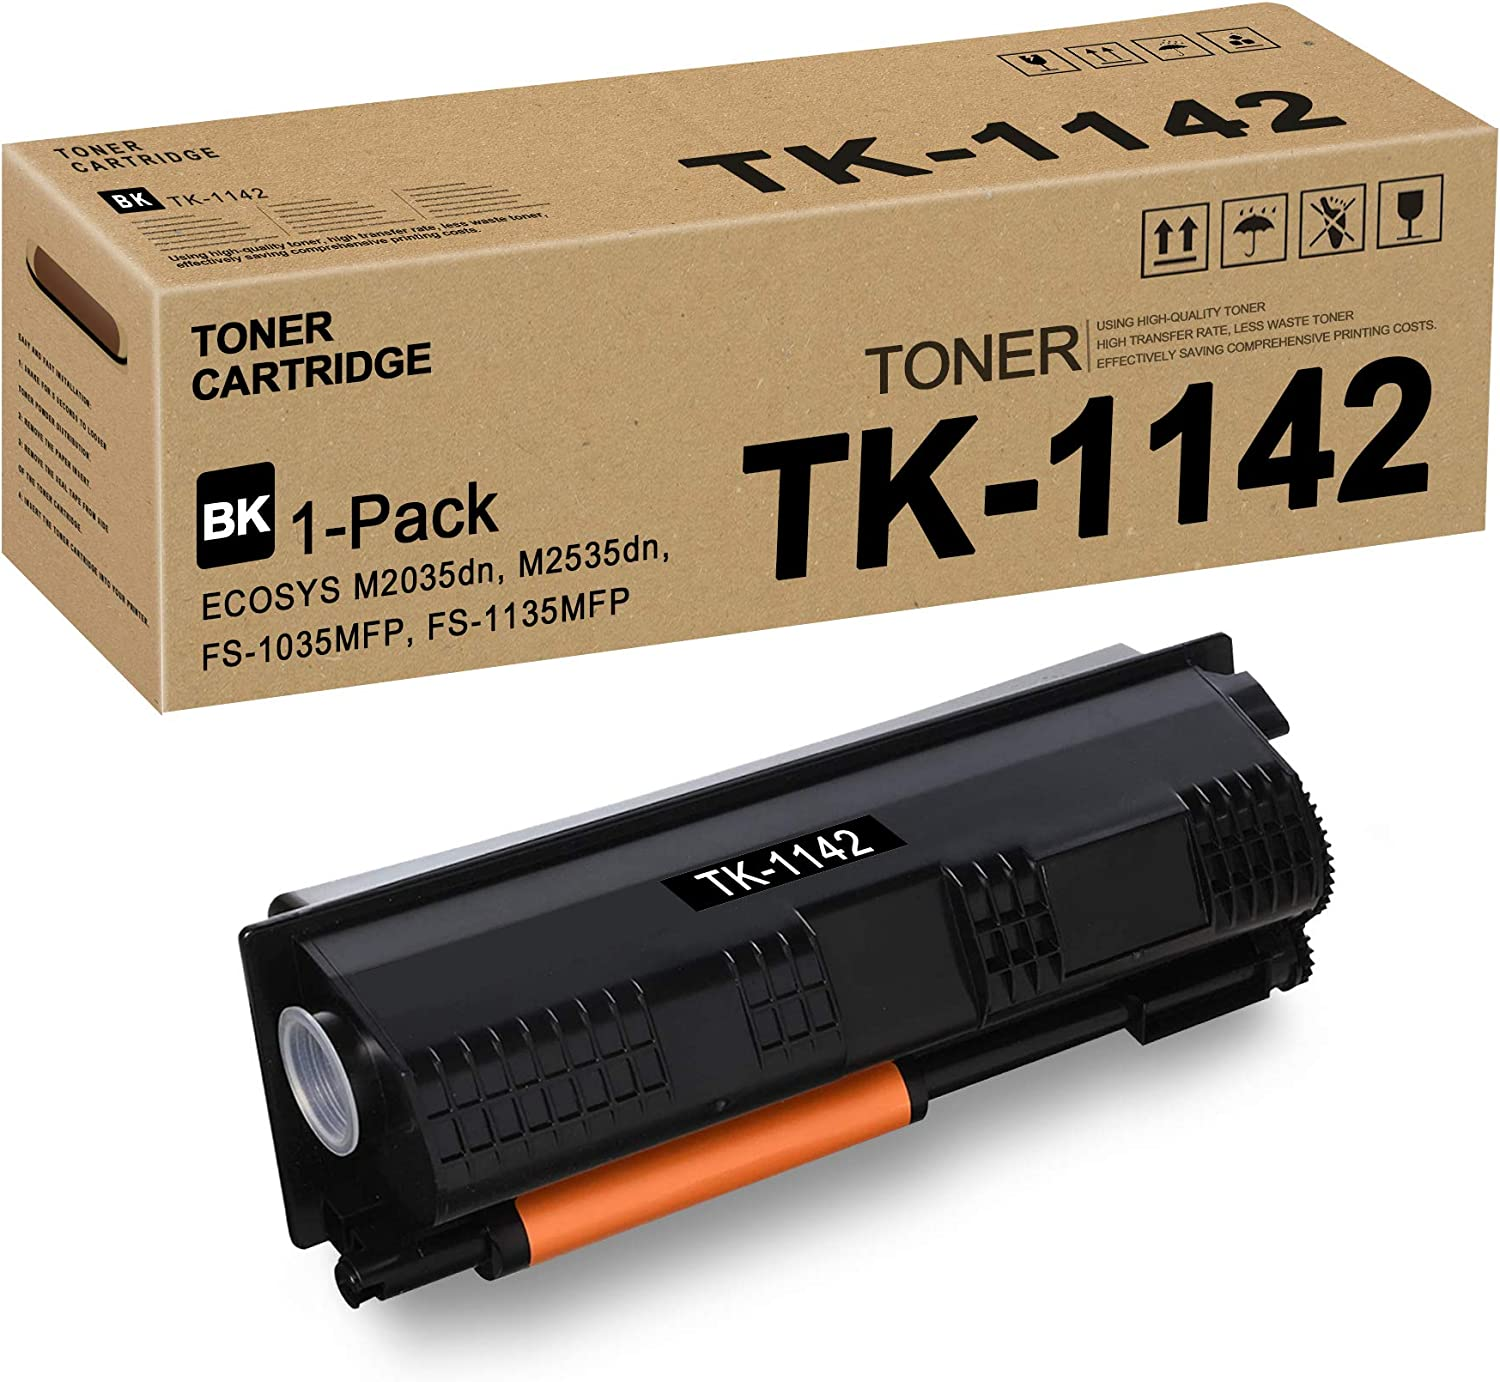 TK1142 TK-1142 購入 保障 1T02ML0US0 Toner Replacement for Cartridge Kyocer